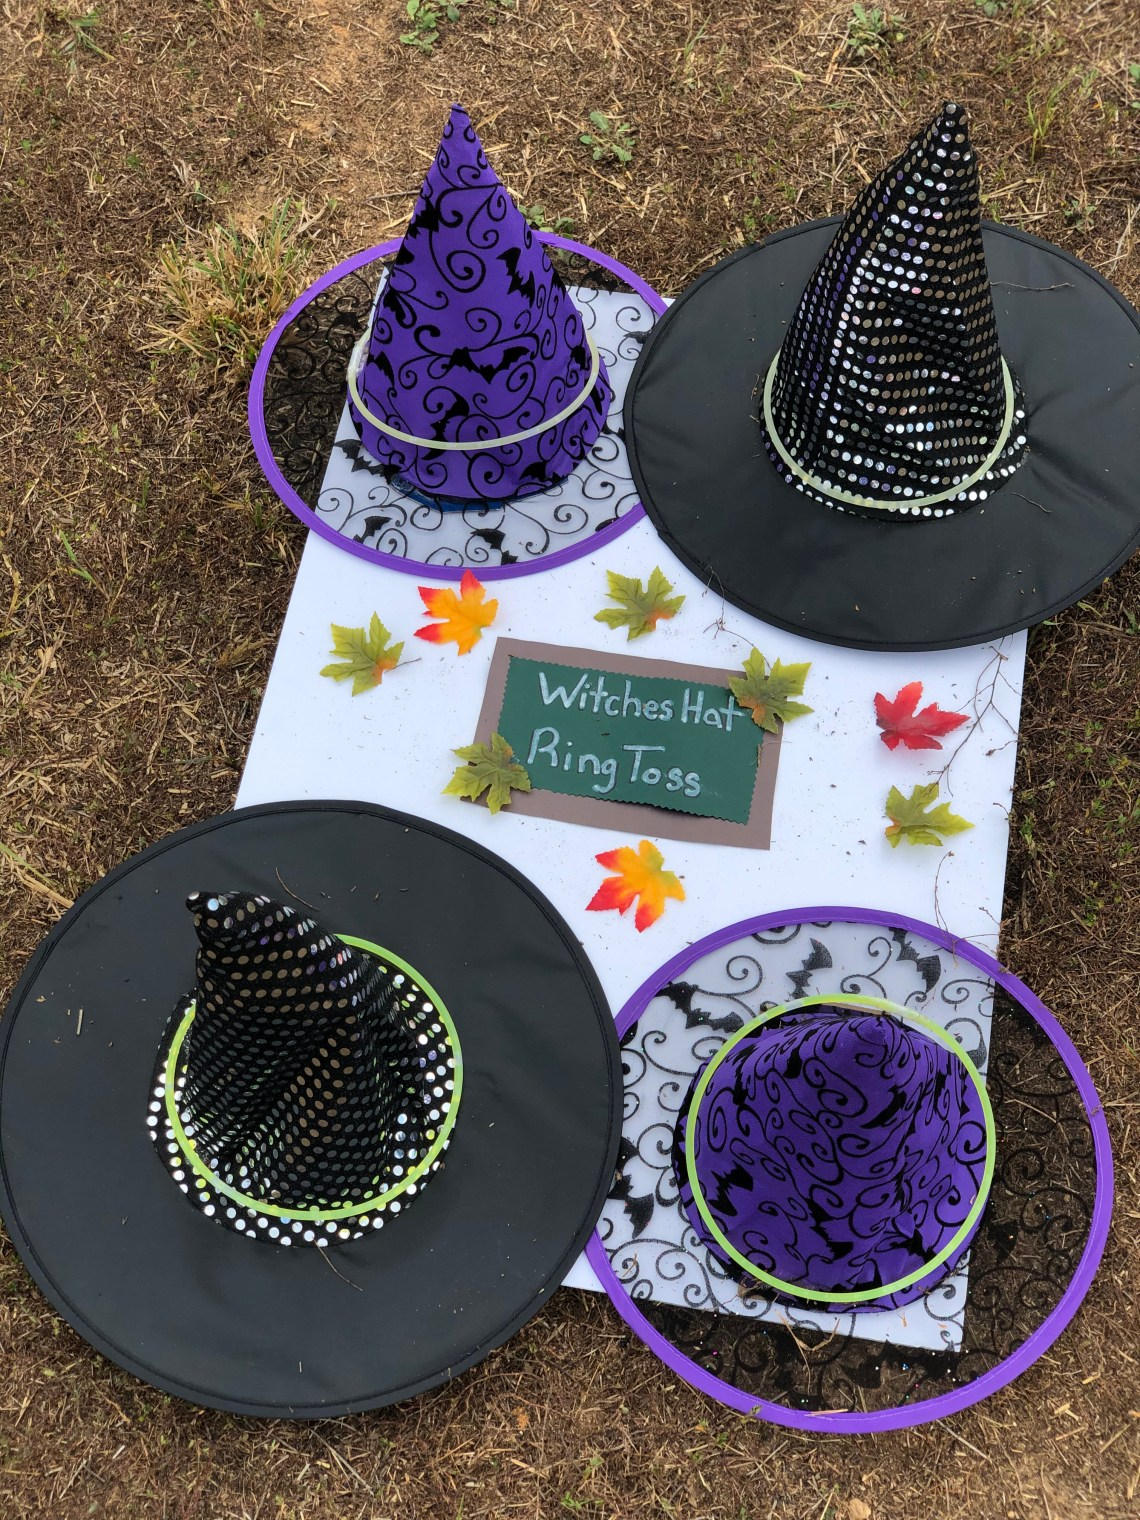 Halloween Games for Kids - Witches Hat Ring Toss - Fun Kids Games via Misty Nelson, mom blogger @frostedevents